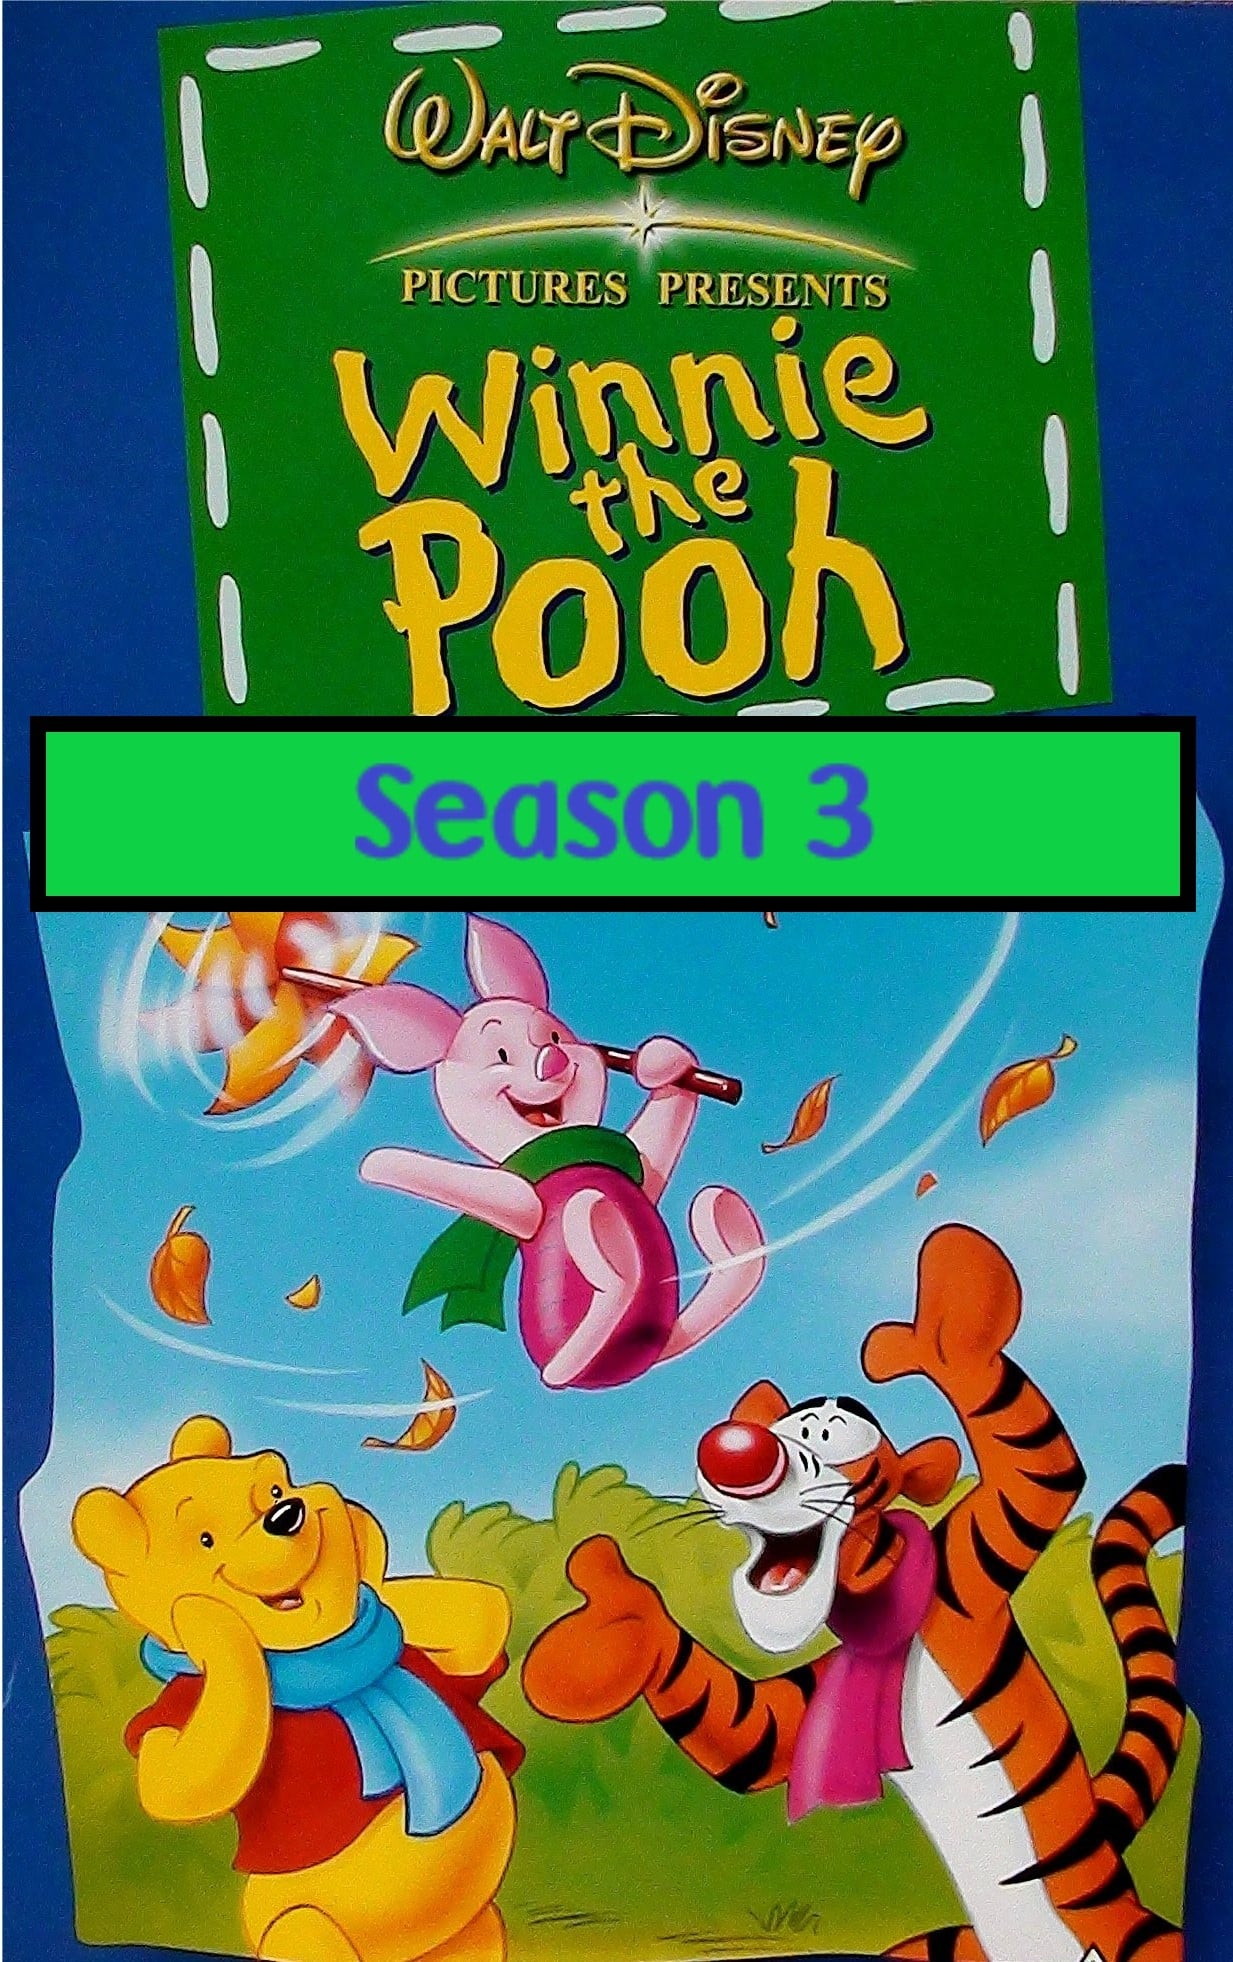 The New Adventures of Winnie the Pooh Season 3